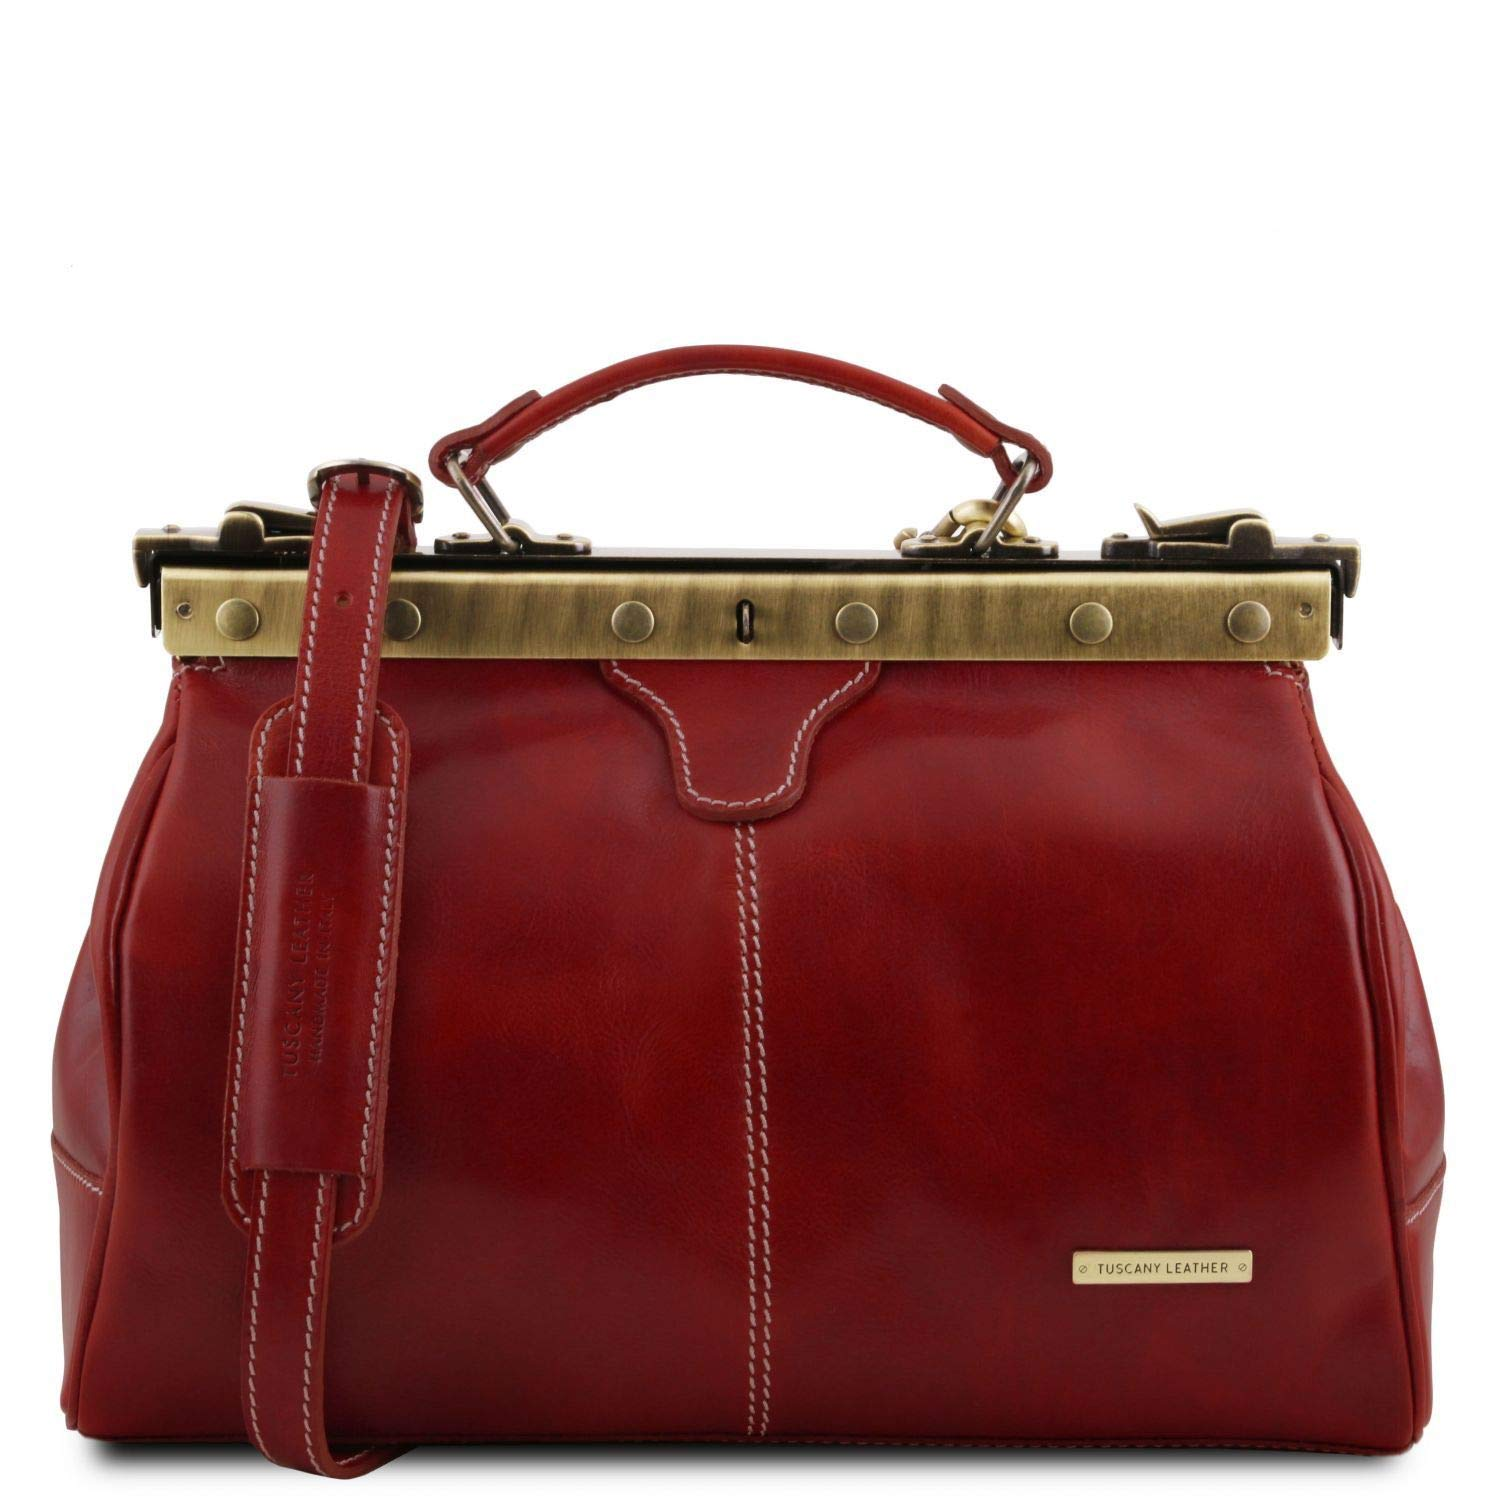 Tuscany Leather Michelangelo Mallette infirmière rétro en cuir Marron 38_1_1